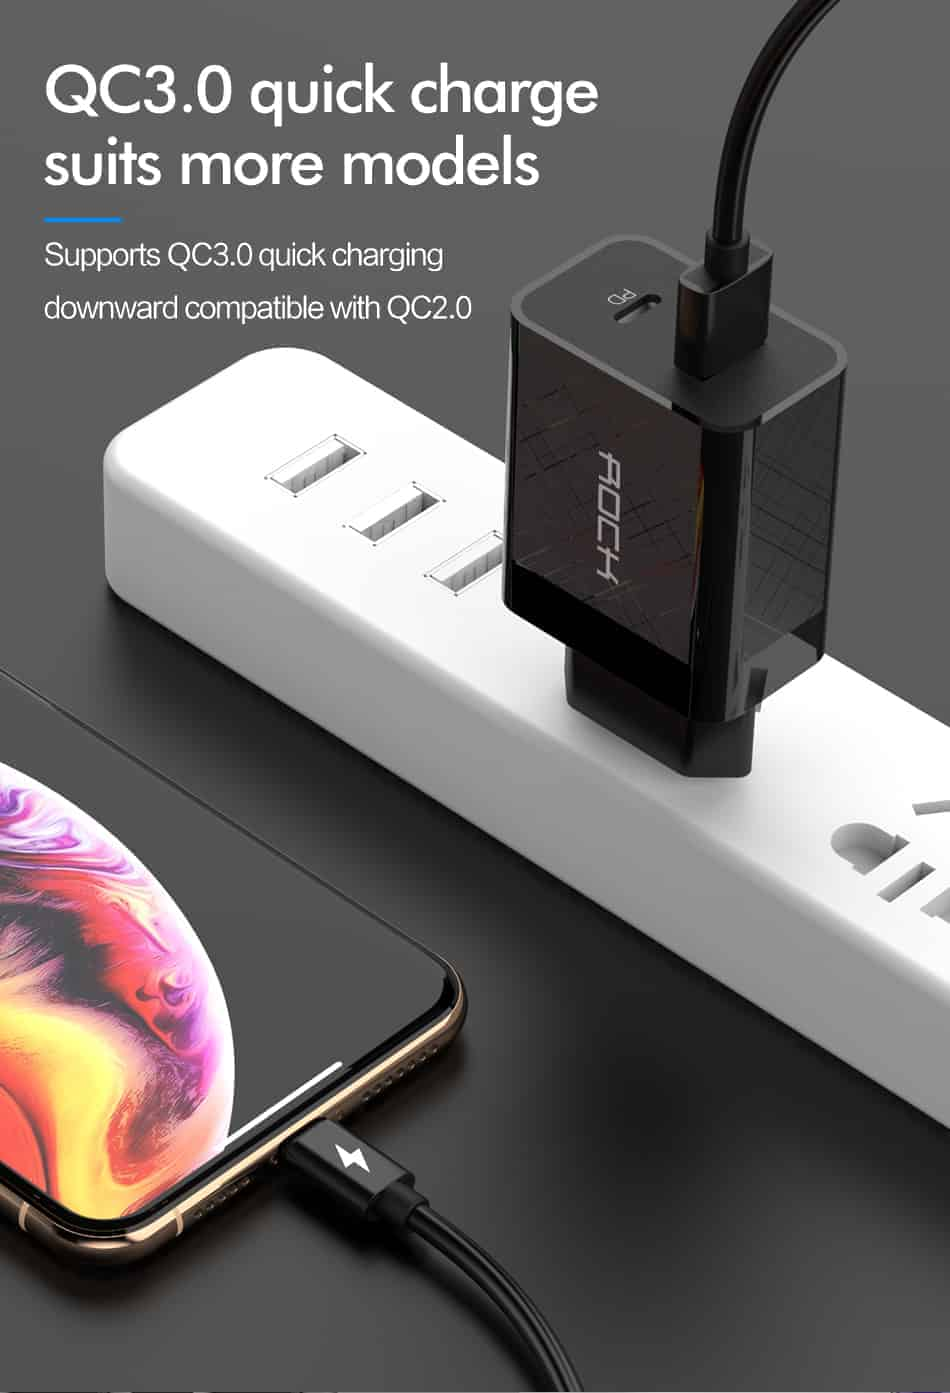 ROCK Quick Charge 4.0 36W QC PD 3.0 Phone Charger_quick charge suits more models